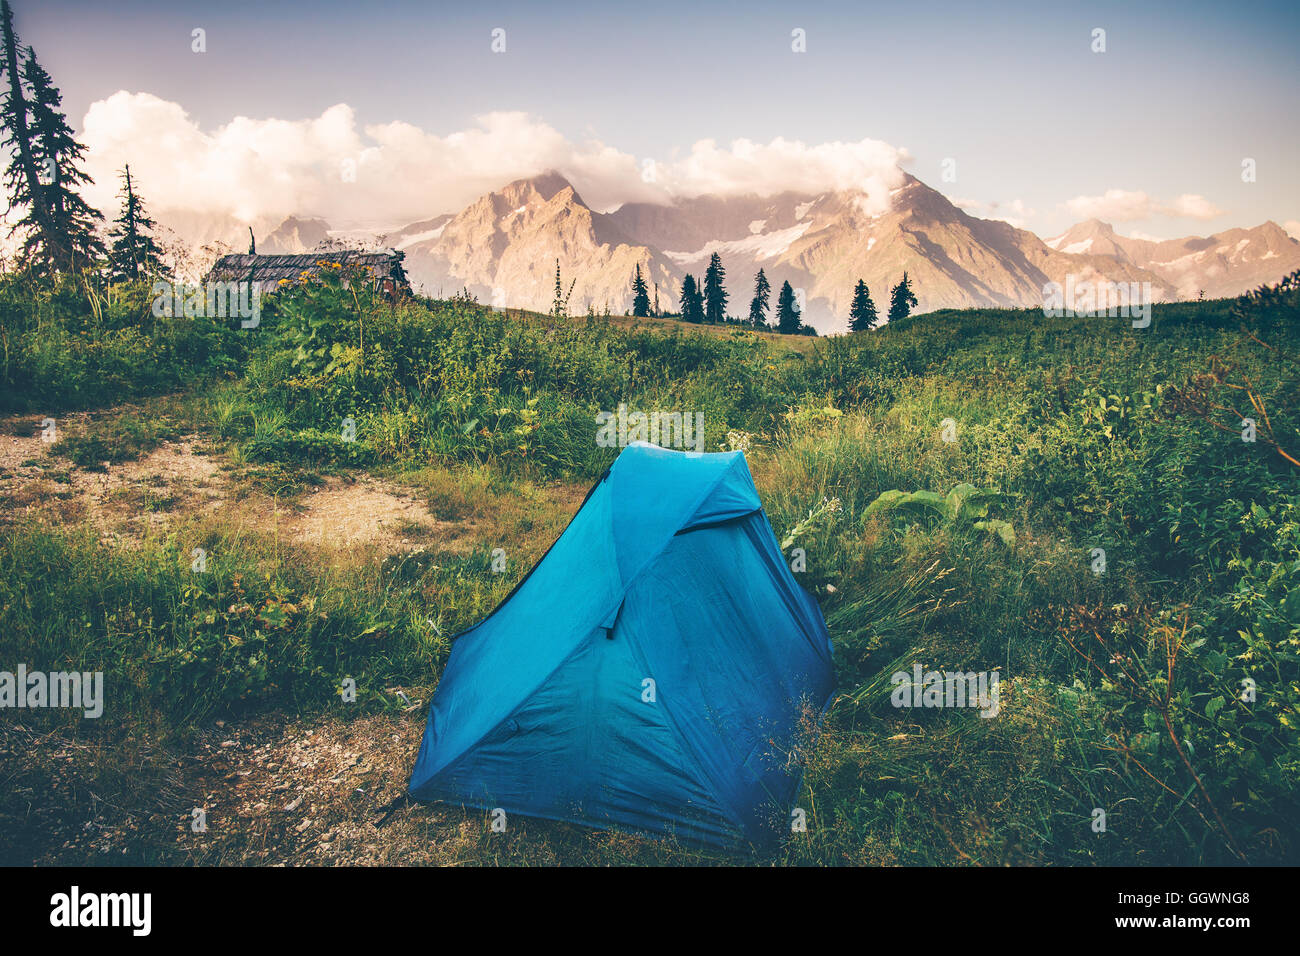 Tent camping with Rocky Mountains Landscape Travel Lifestyle concept Summer adventure vacations outdoor - Stock Image